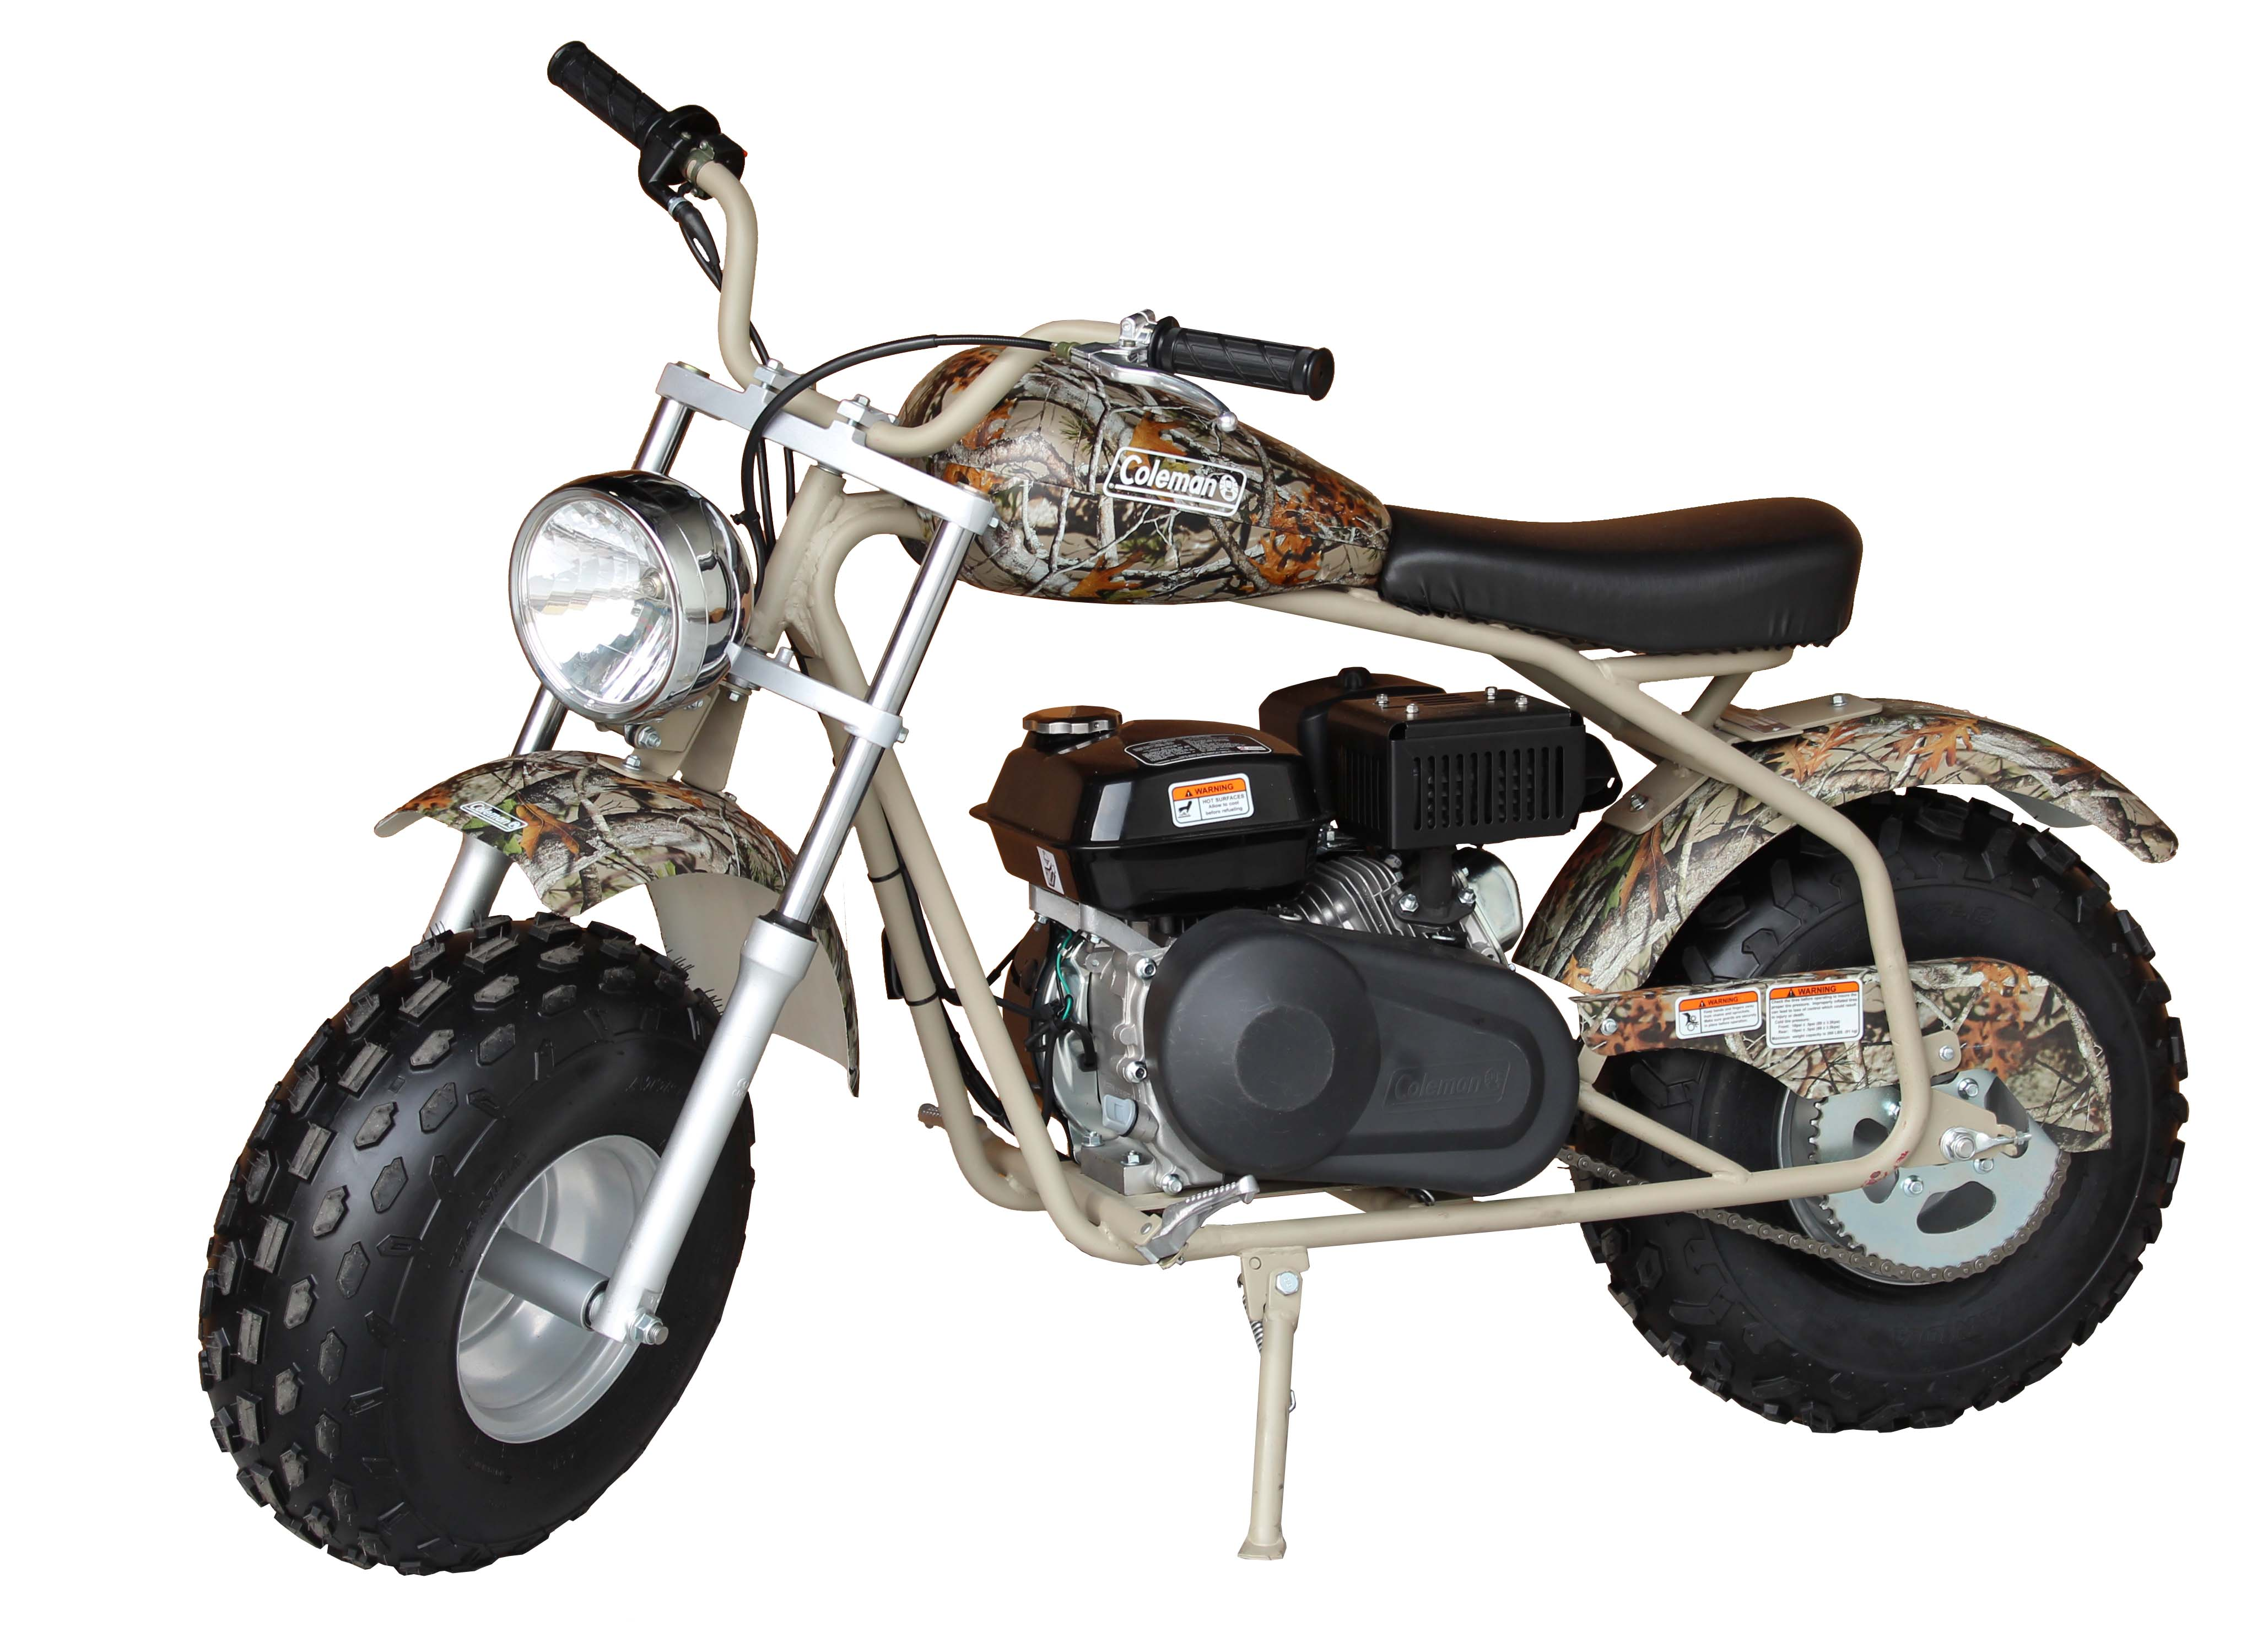 Coleman Powersports 200cc Gas-Powered Ride-On